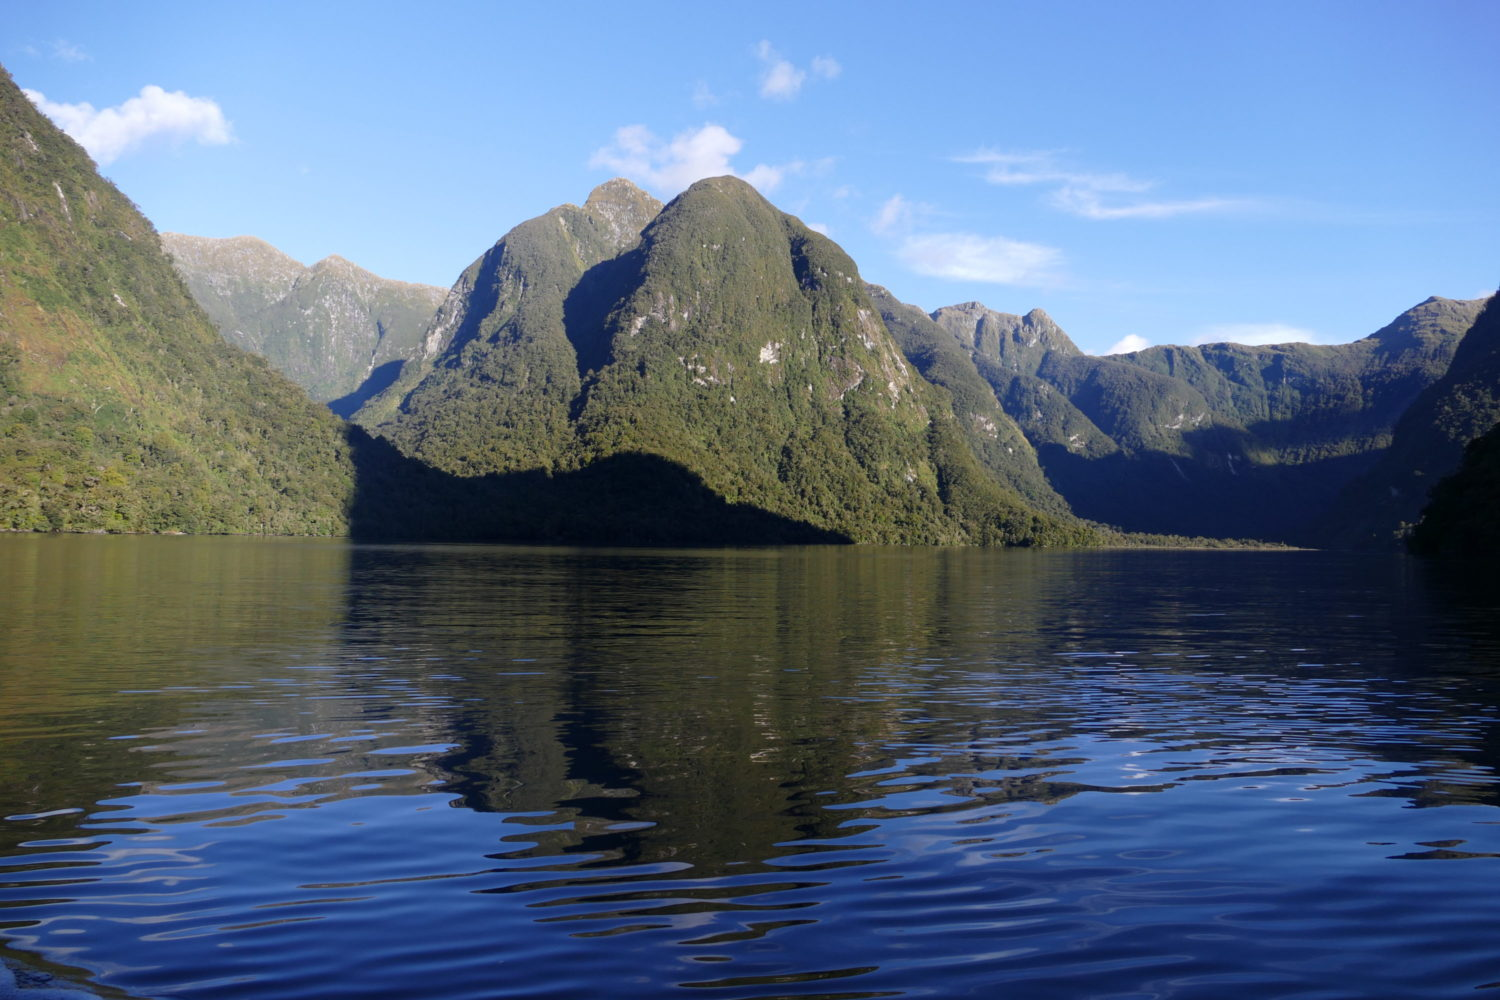 Mid-afternoon, Doubtful Sound, April 22, 2015. All photos copyright Doug Spencer.